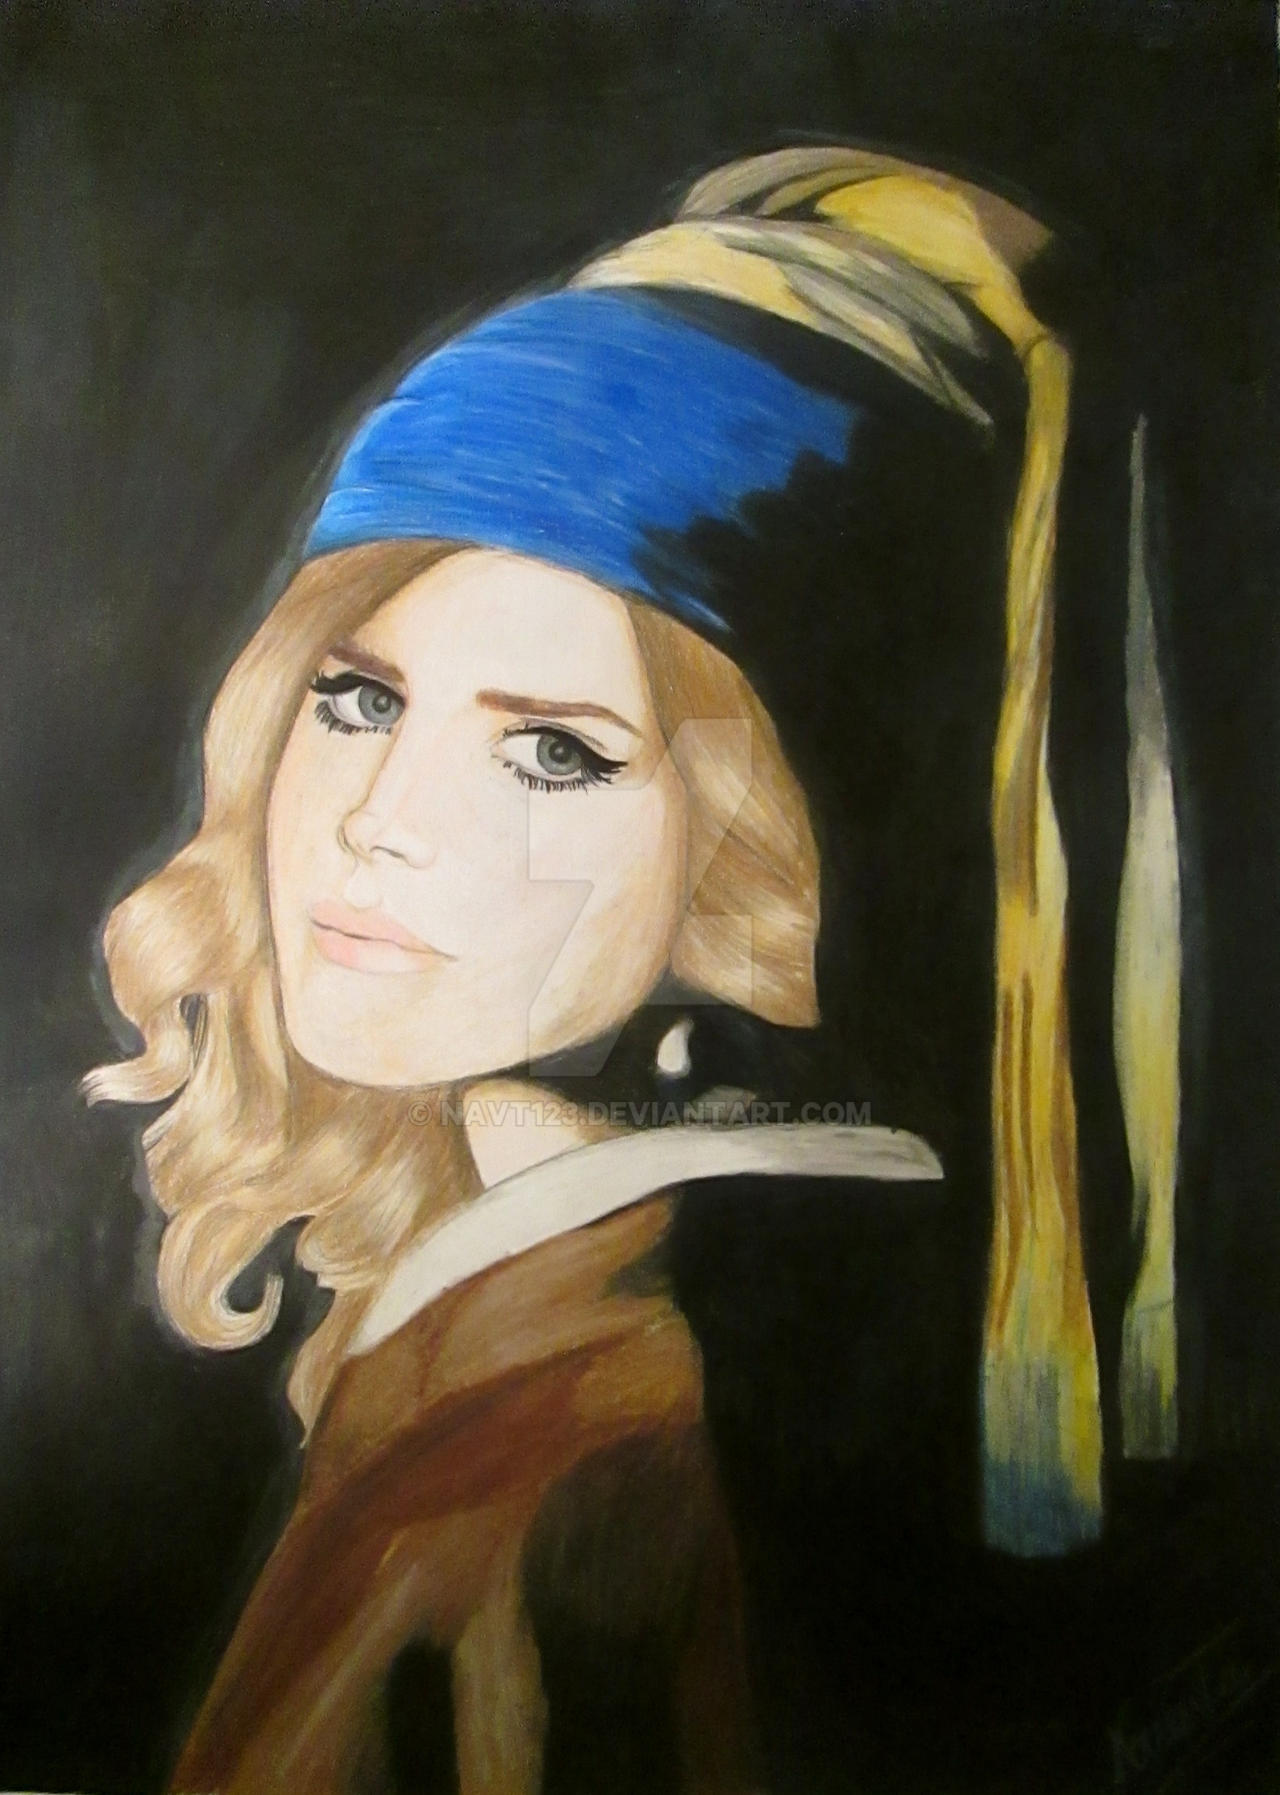 Lana Del Rey With A Pearl Earring By Navt123 On Deviantart